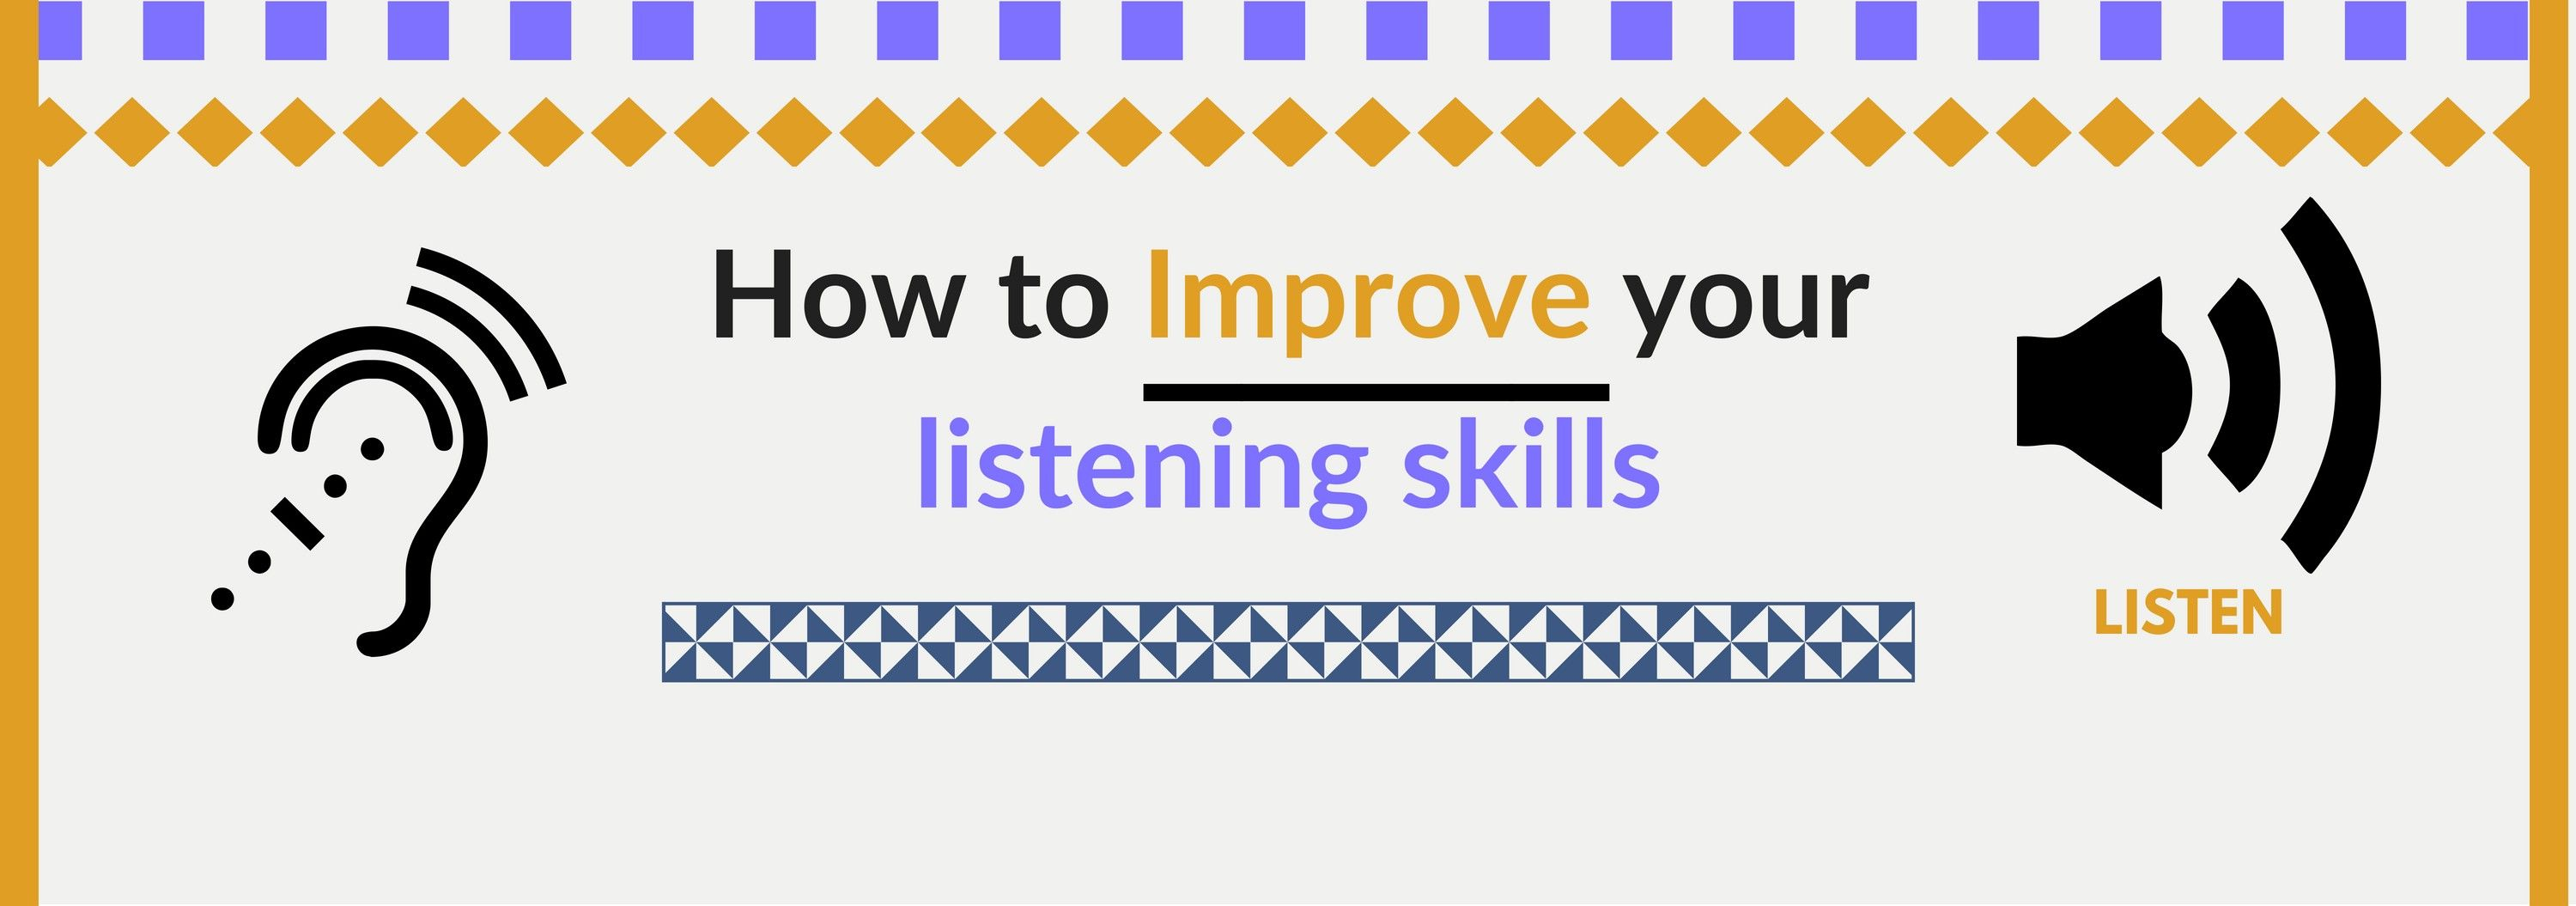 How to improve your listening skills with images